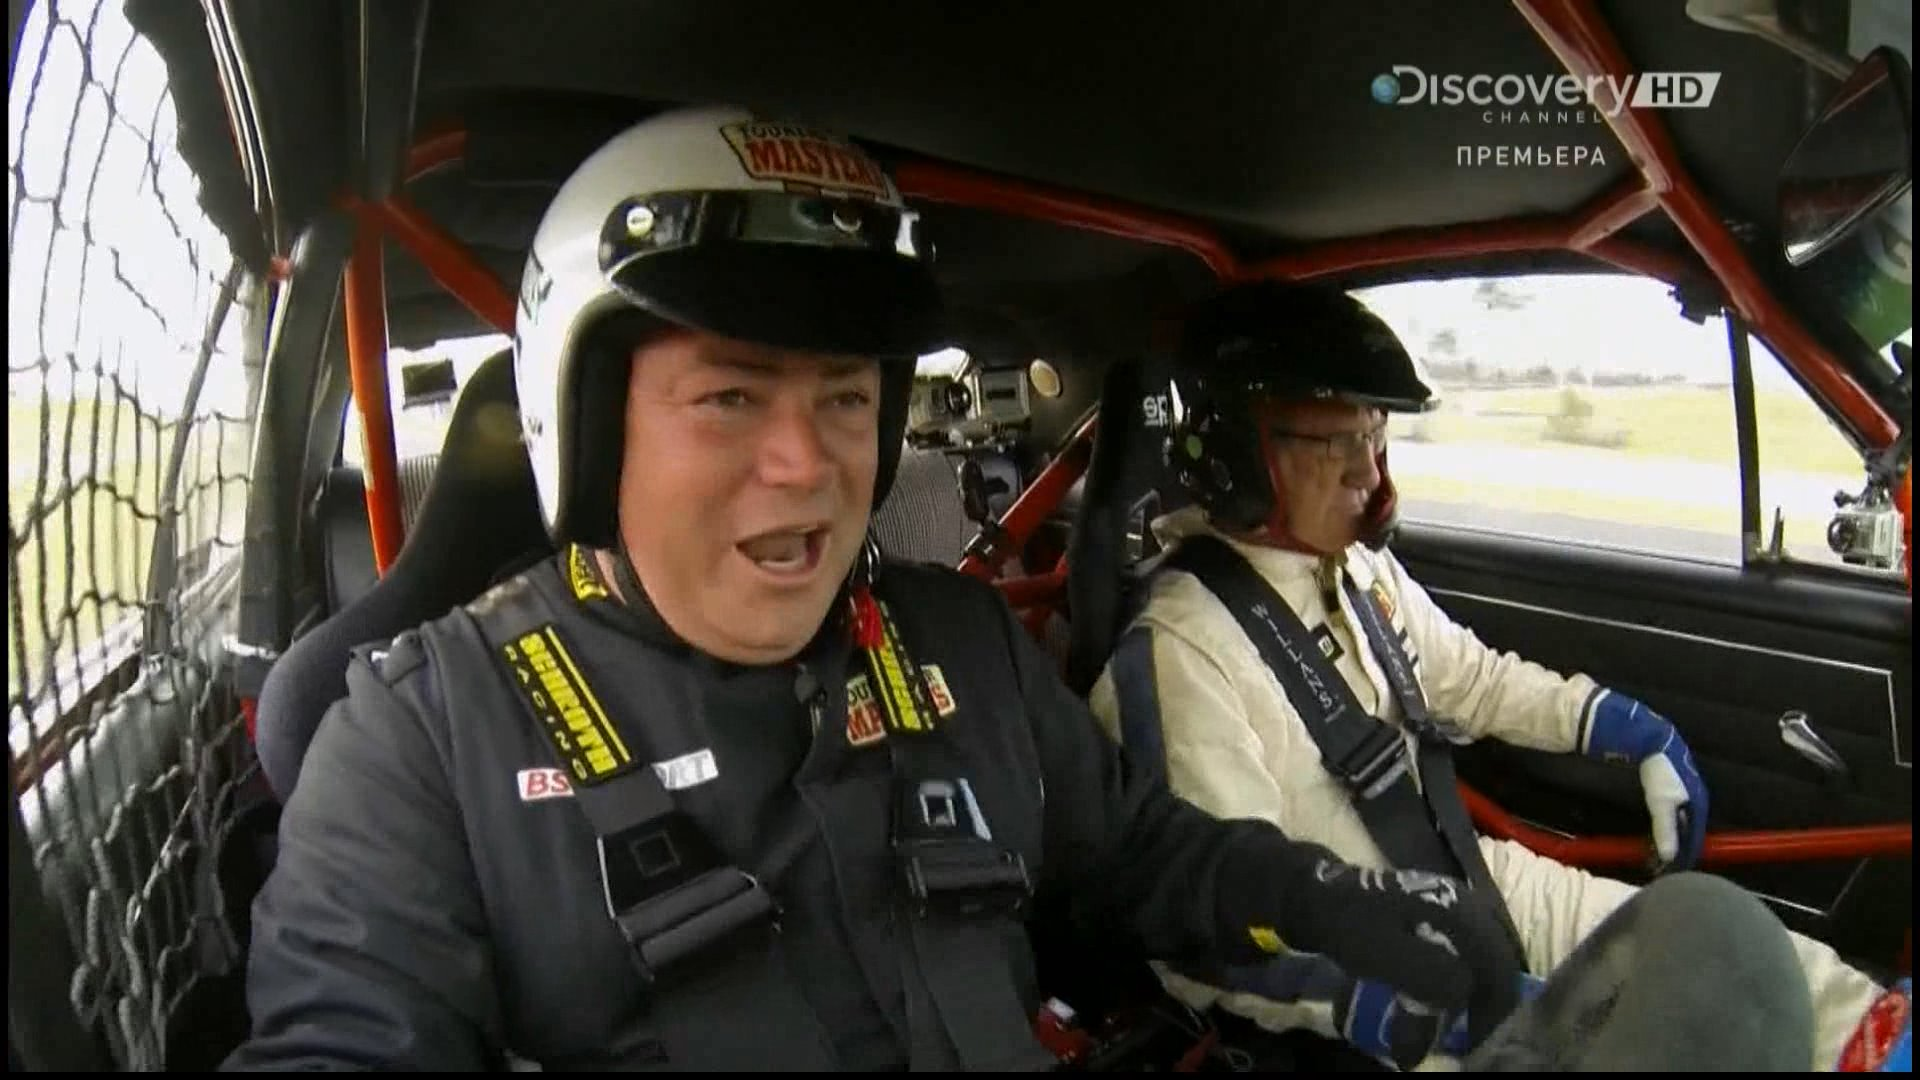 Discovery. ������� ��������� / Wheeler Dealers: Trading Up [S02] (2013) HDTV 1080p